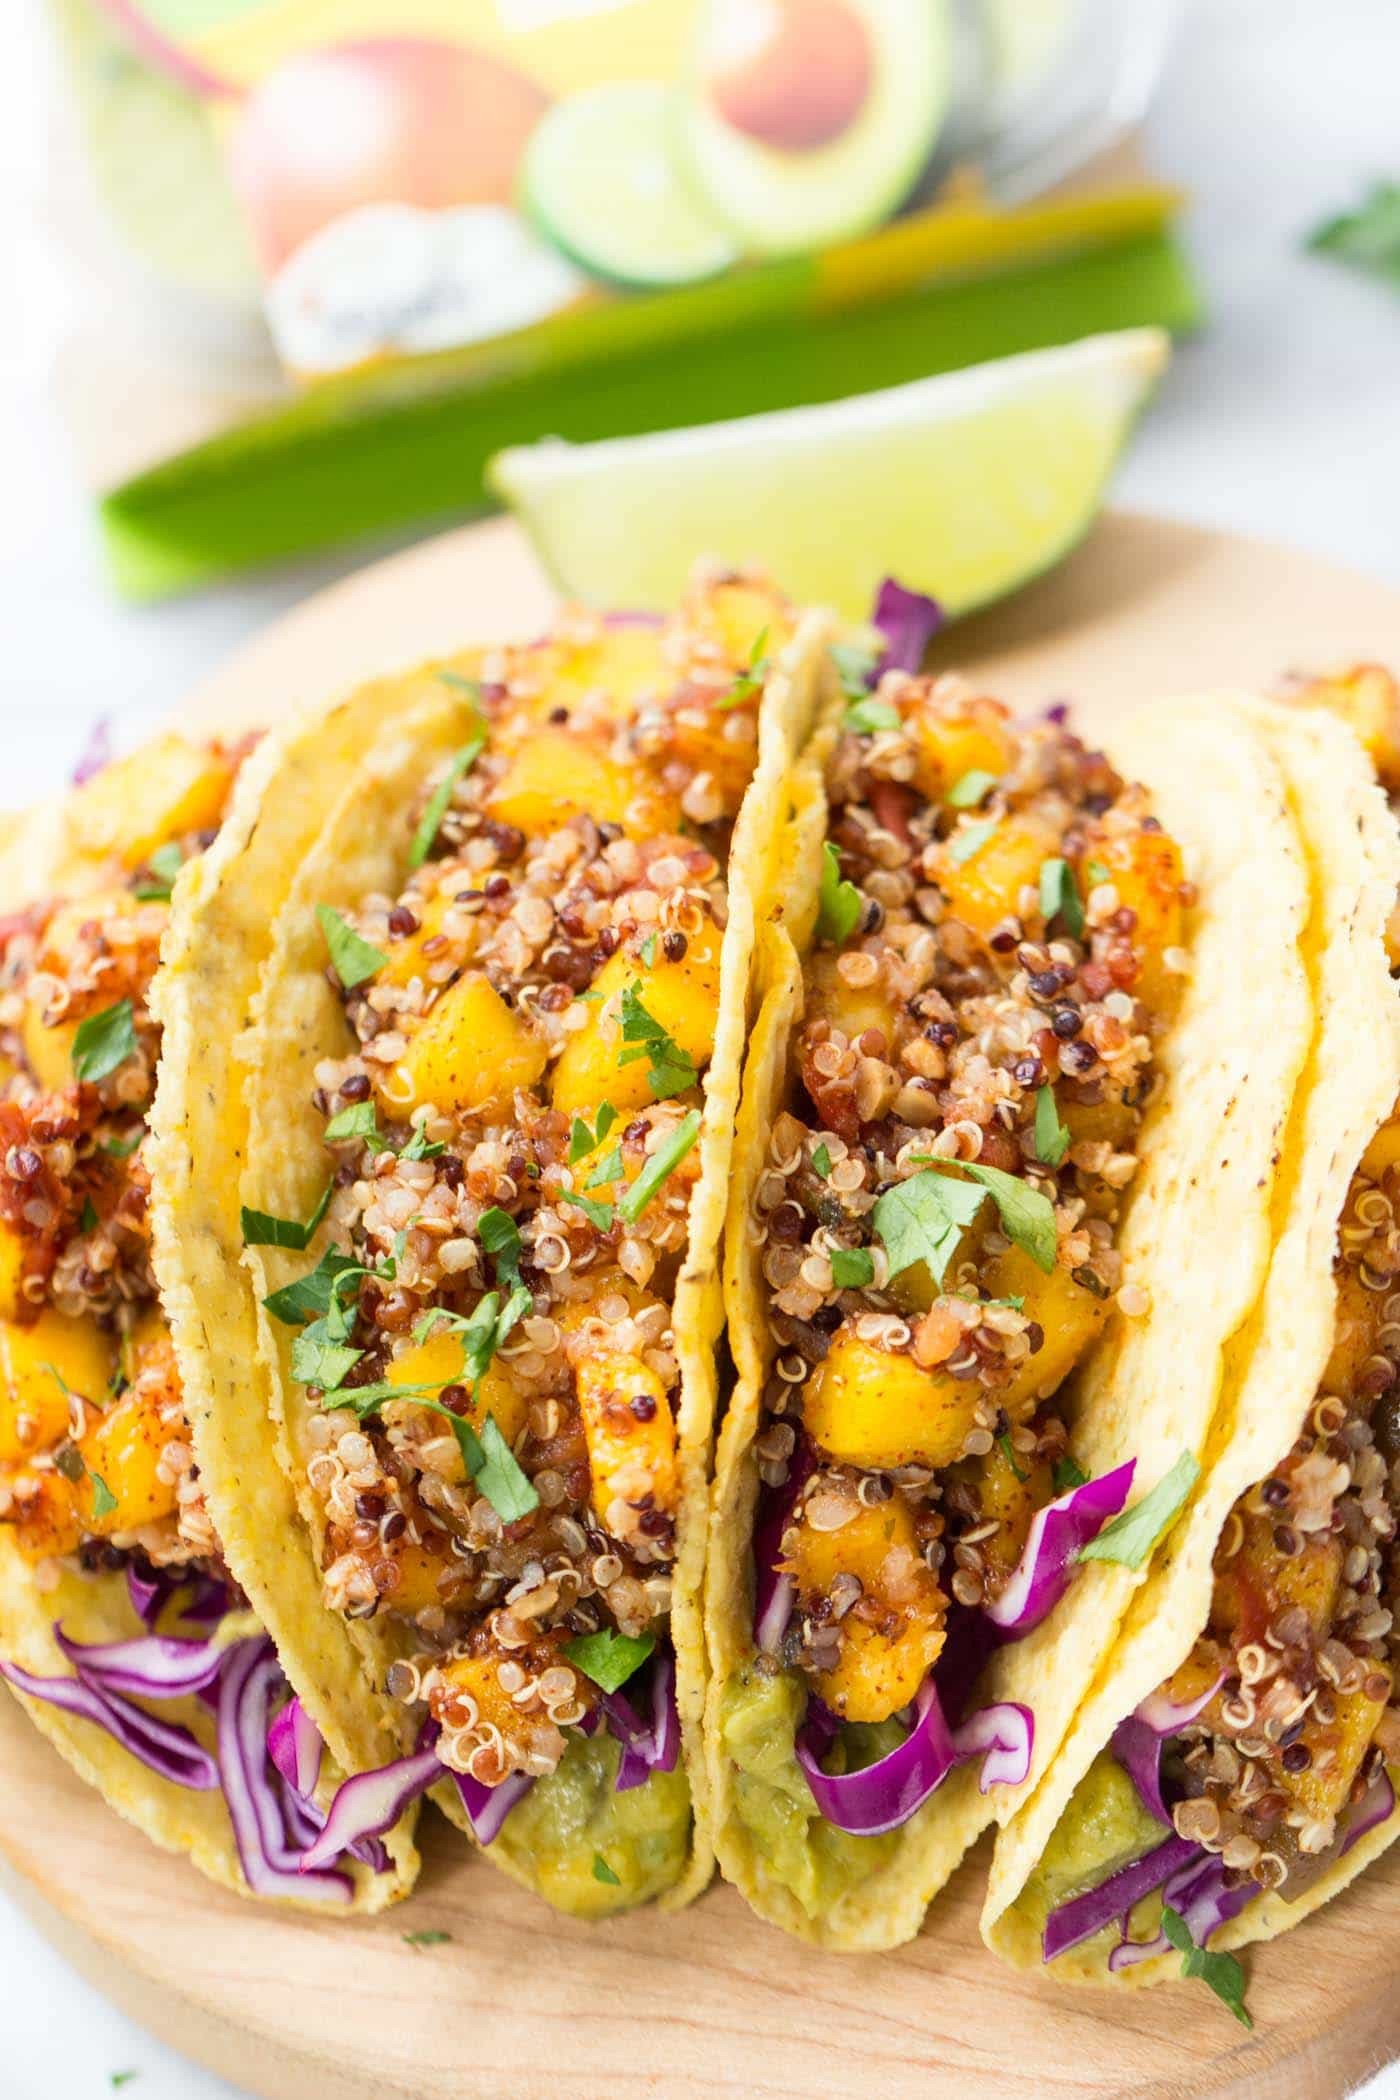 10-MINUTE QUINOA TACOS with a spicy mango-lime filling, red cabbage and creamy guacamole dip on the bottom! [vegan + gluten-free]